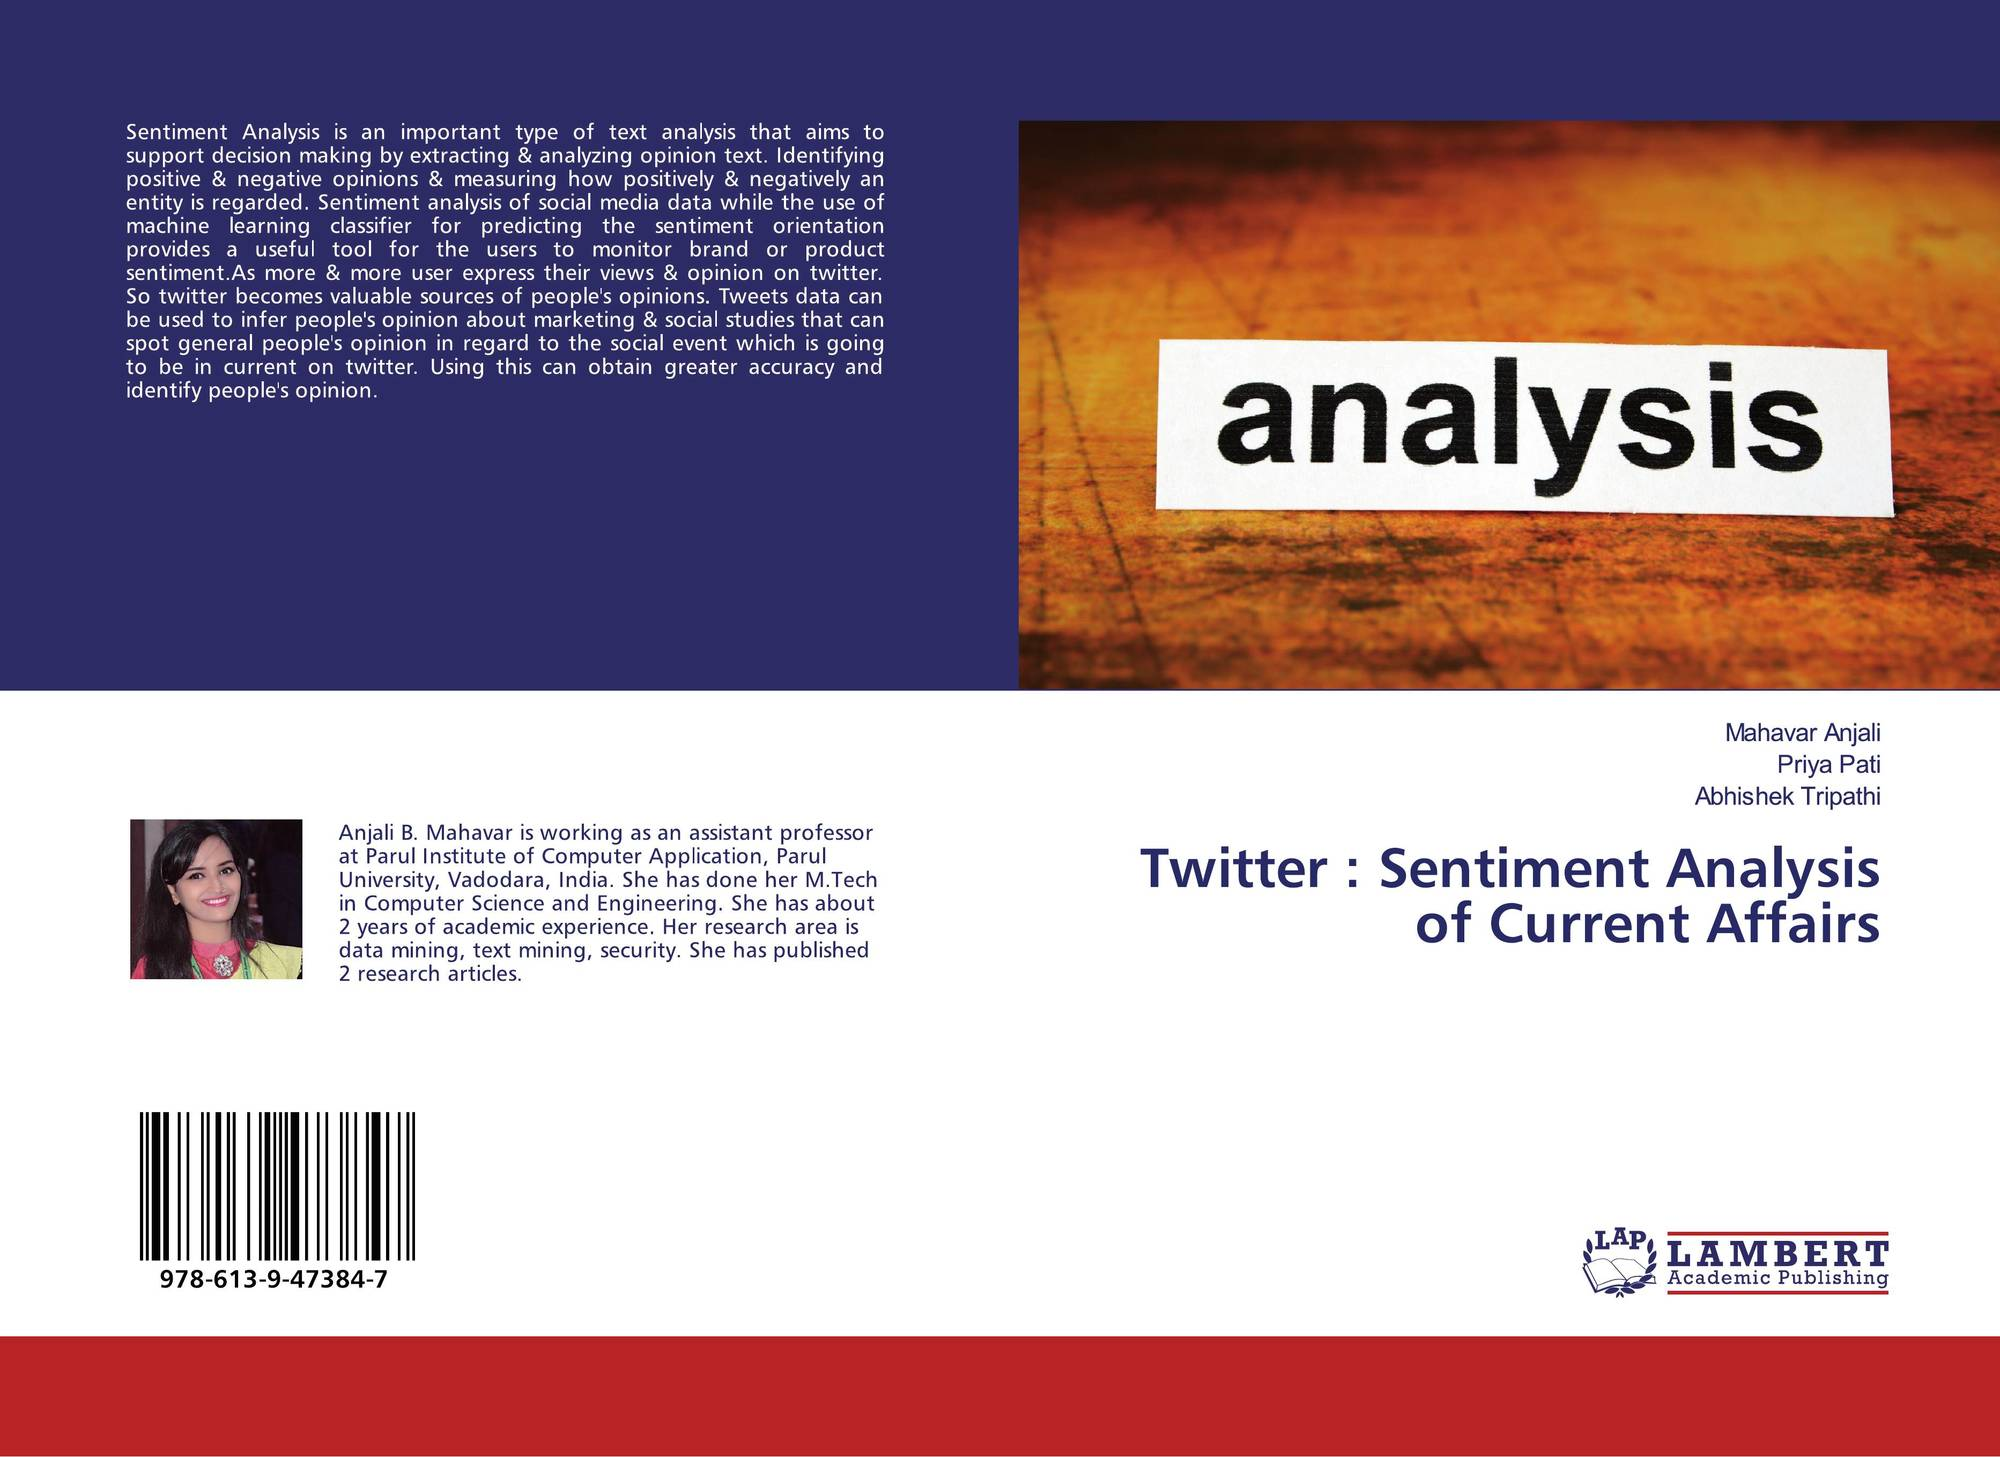 Twitter : Sentiment Analysis of Current Affairs, 978-613-9